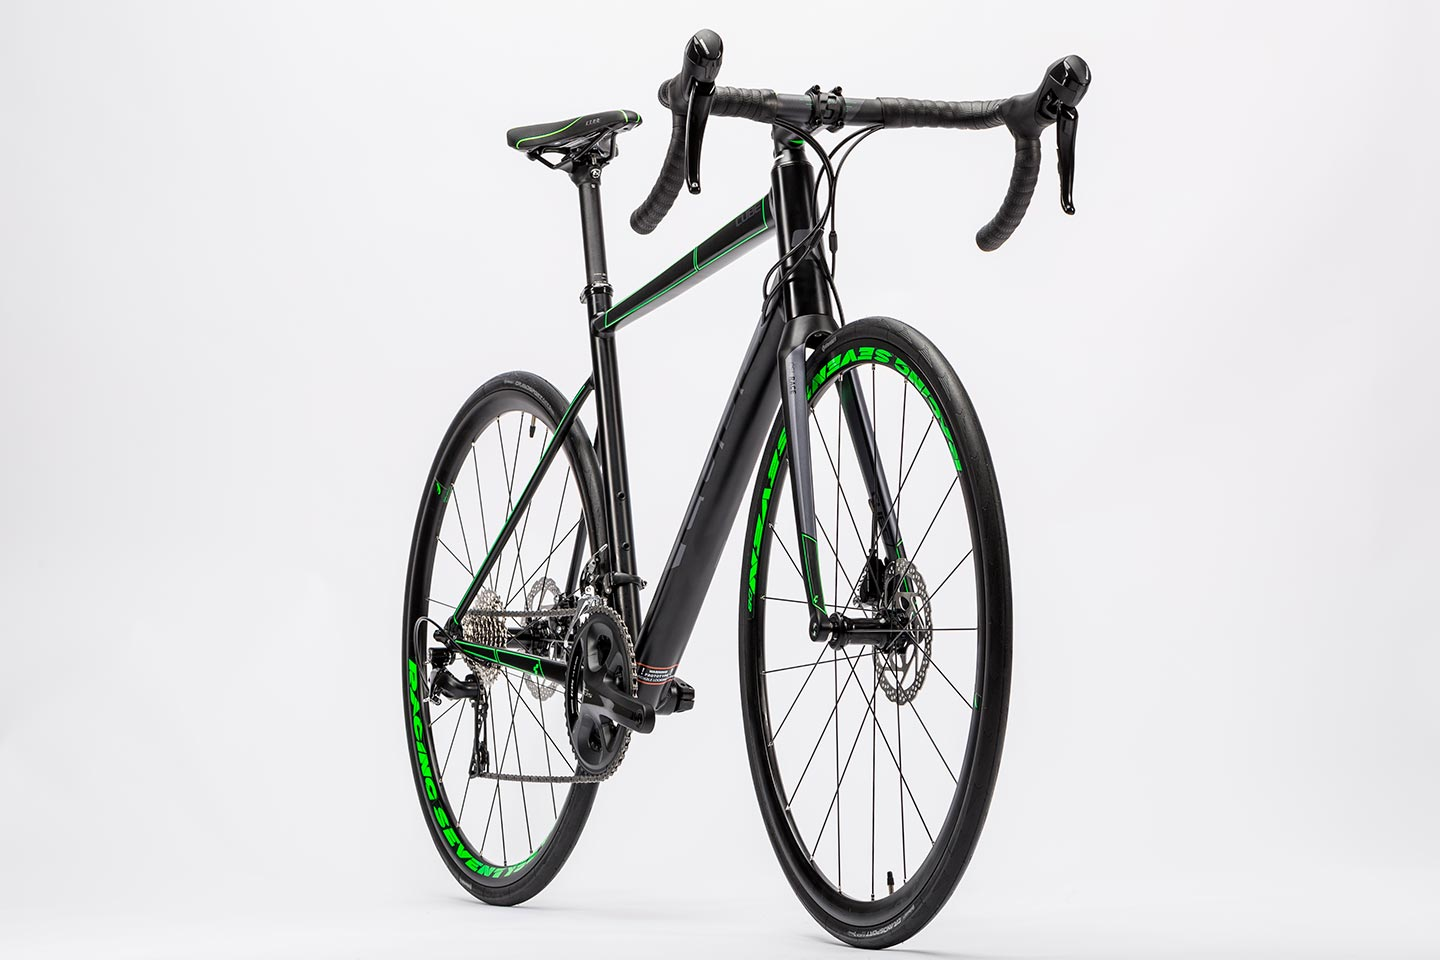 df7fc243ee2 Cube Attain SL Disc 2016 road bike black/green £1,079.10